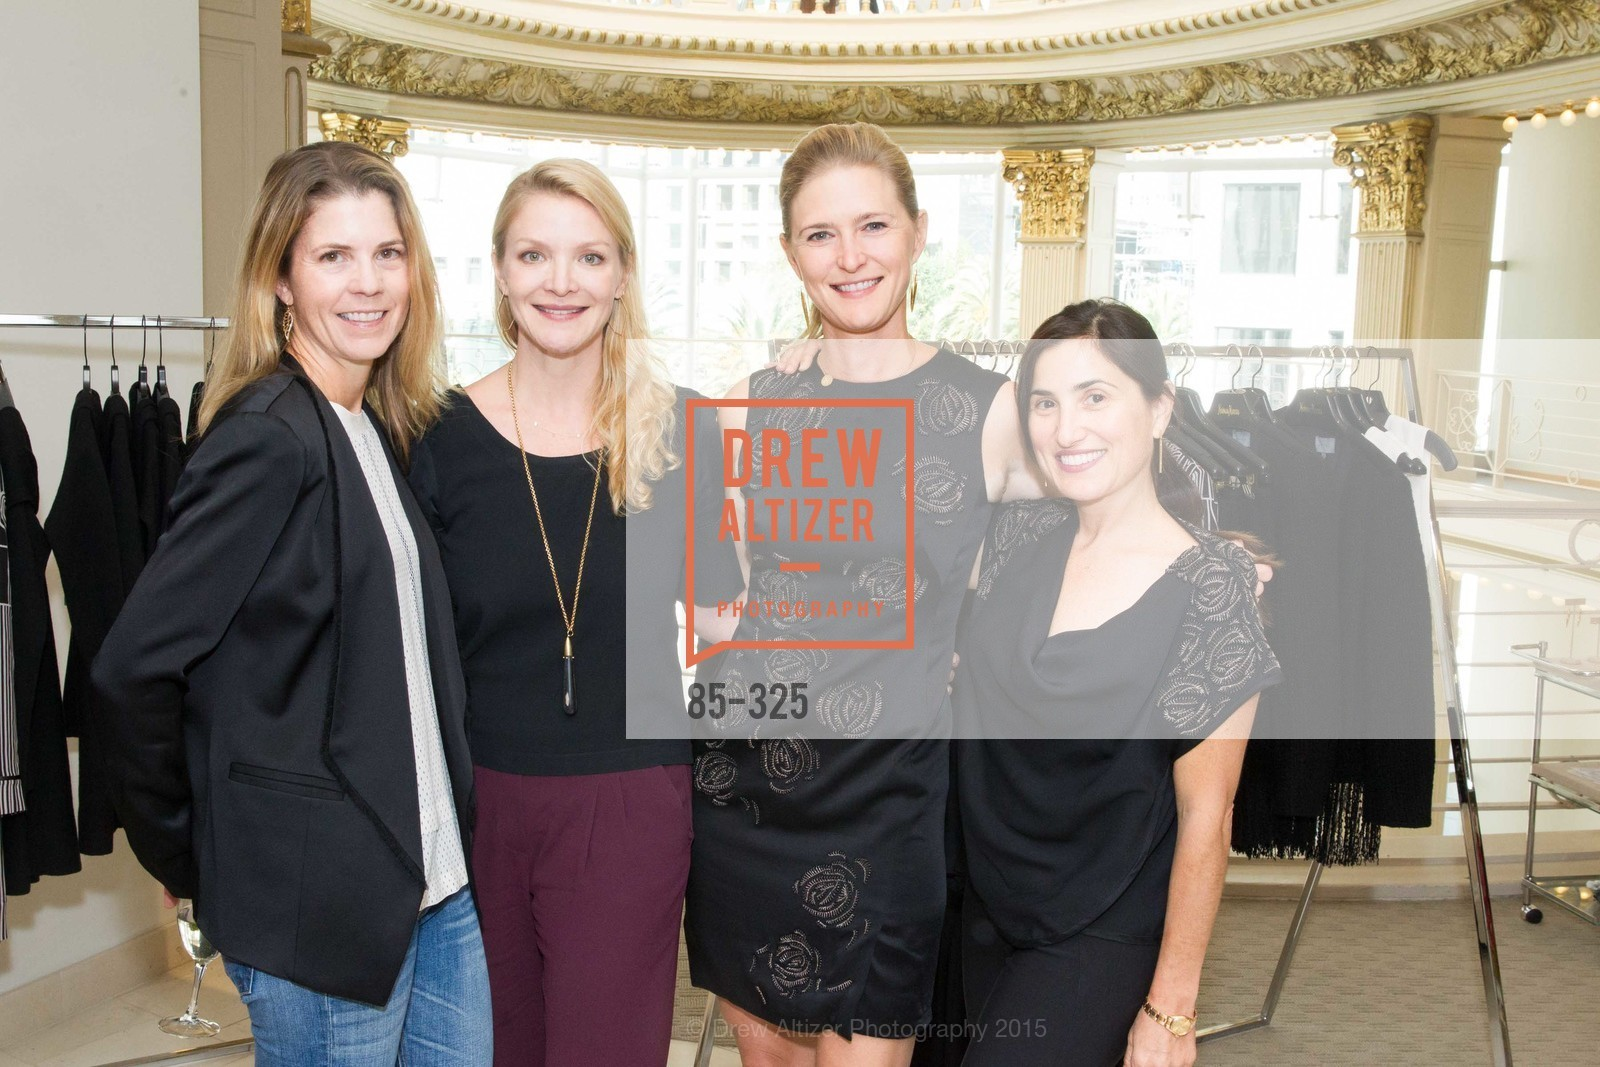 Natasha Bradley, Kristy Caylor, Alicia Engstrom, Zem Joaquin, Maiyet Reception at Neiman Marcus, Neiman Marcus, September 29th, 2015,Drew Altizer, Drew Altizer Photography, full-service agency, private events, San Francisco photographer, photographer california